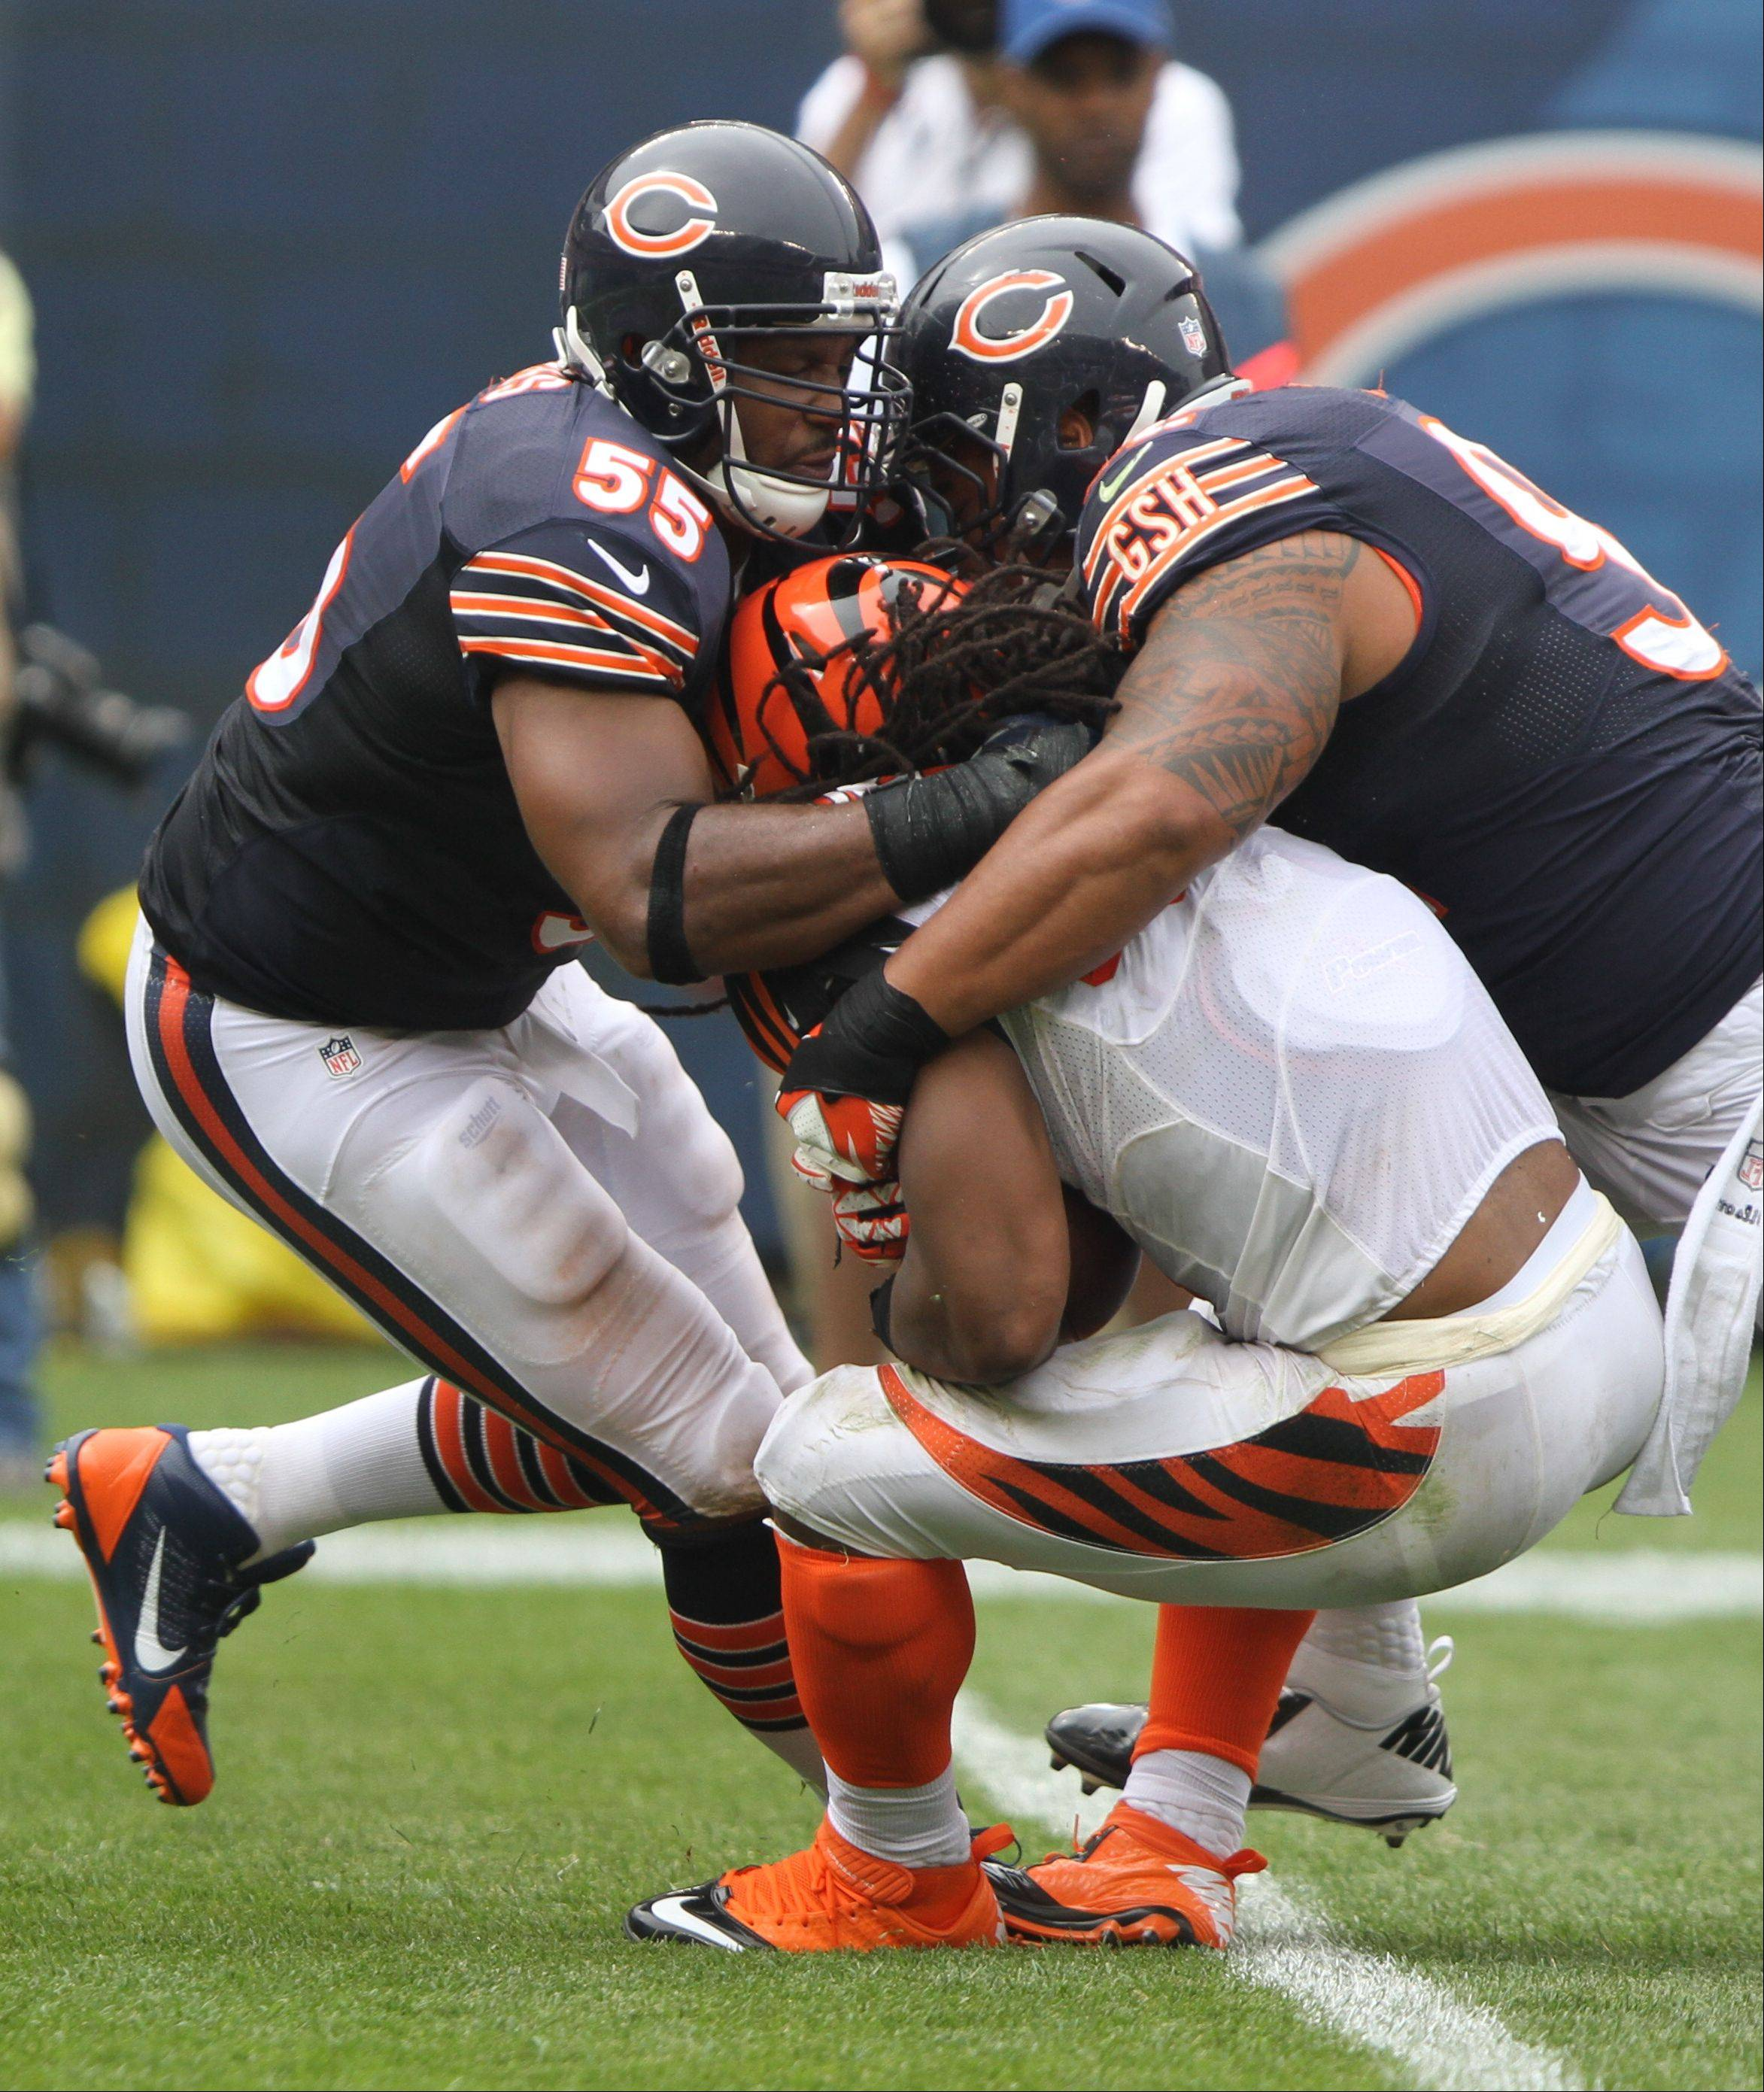 Steve Lundy/slundy@dailyherald.com � Chicago Bears outside linebacker Lance Briggs and Chicago Bears defensive end Julius Peppers put a hit on Cincinnati Bengals running back BenJarvus Green-Ellis during their opening day game against the Cincinnati Bengals Sunday at Soldier Field in Chicago.